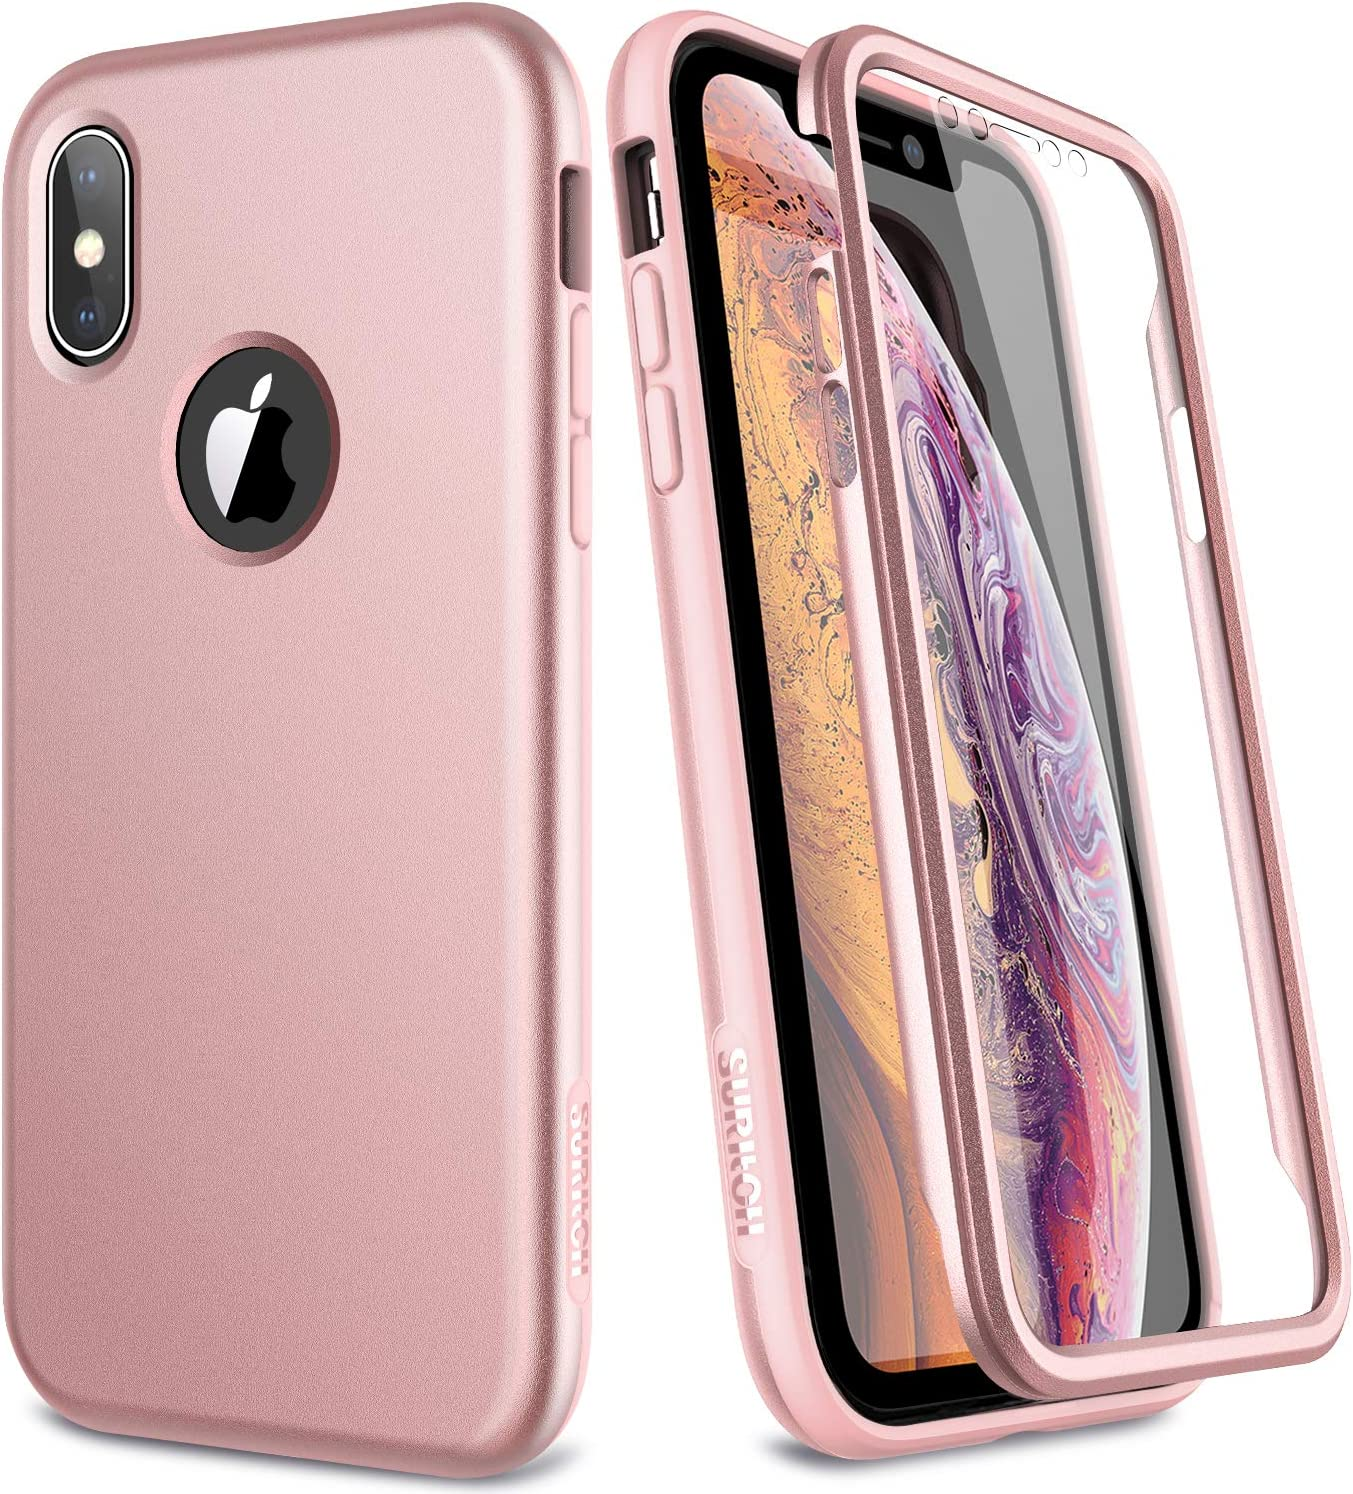 SURITCH iPhone Xs Case/iPhone X Case, [Built-in Screen Protector] Matte Full-Body Protection Hard PC Bumper + TPU Rubber Shockproof Cover Compatible with Apple iPhone Xs/iPhone 10 (Rose Gold)